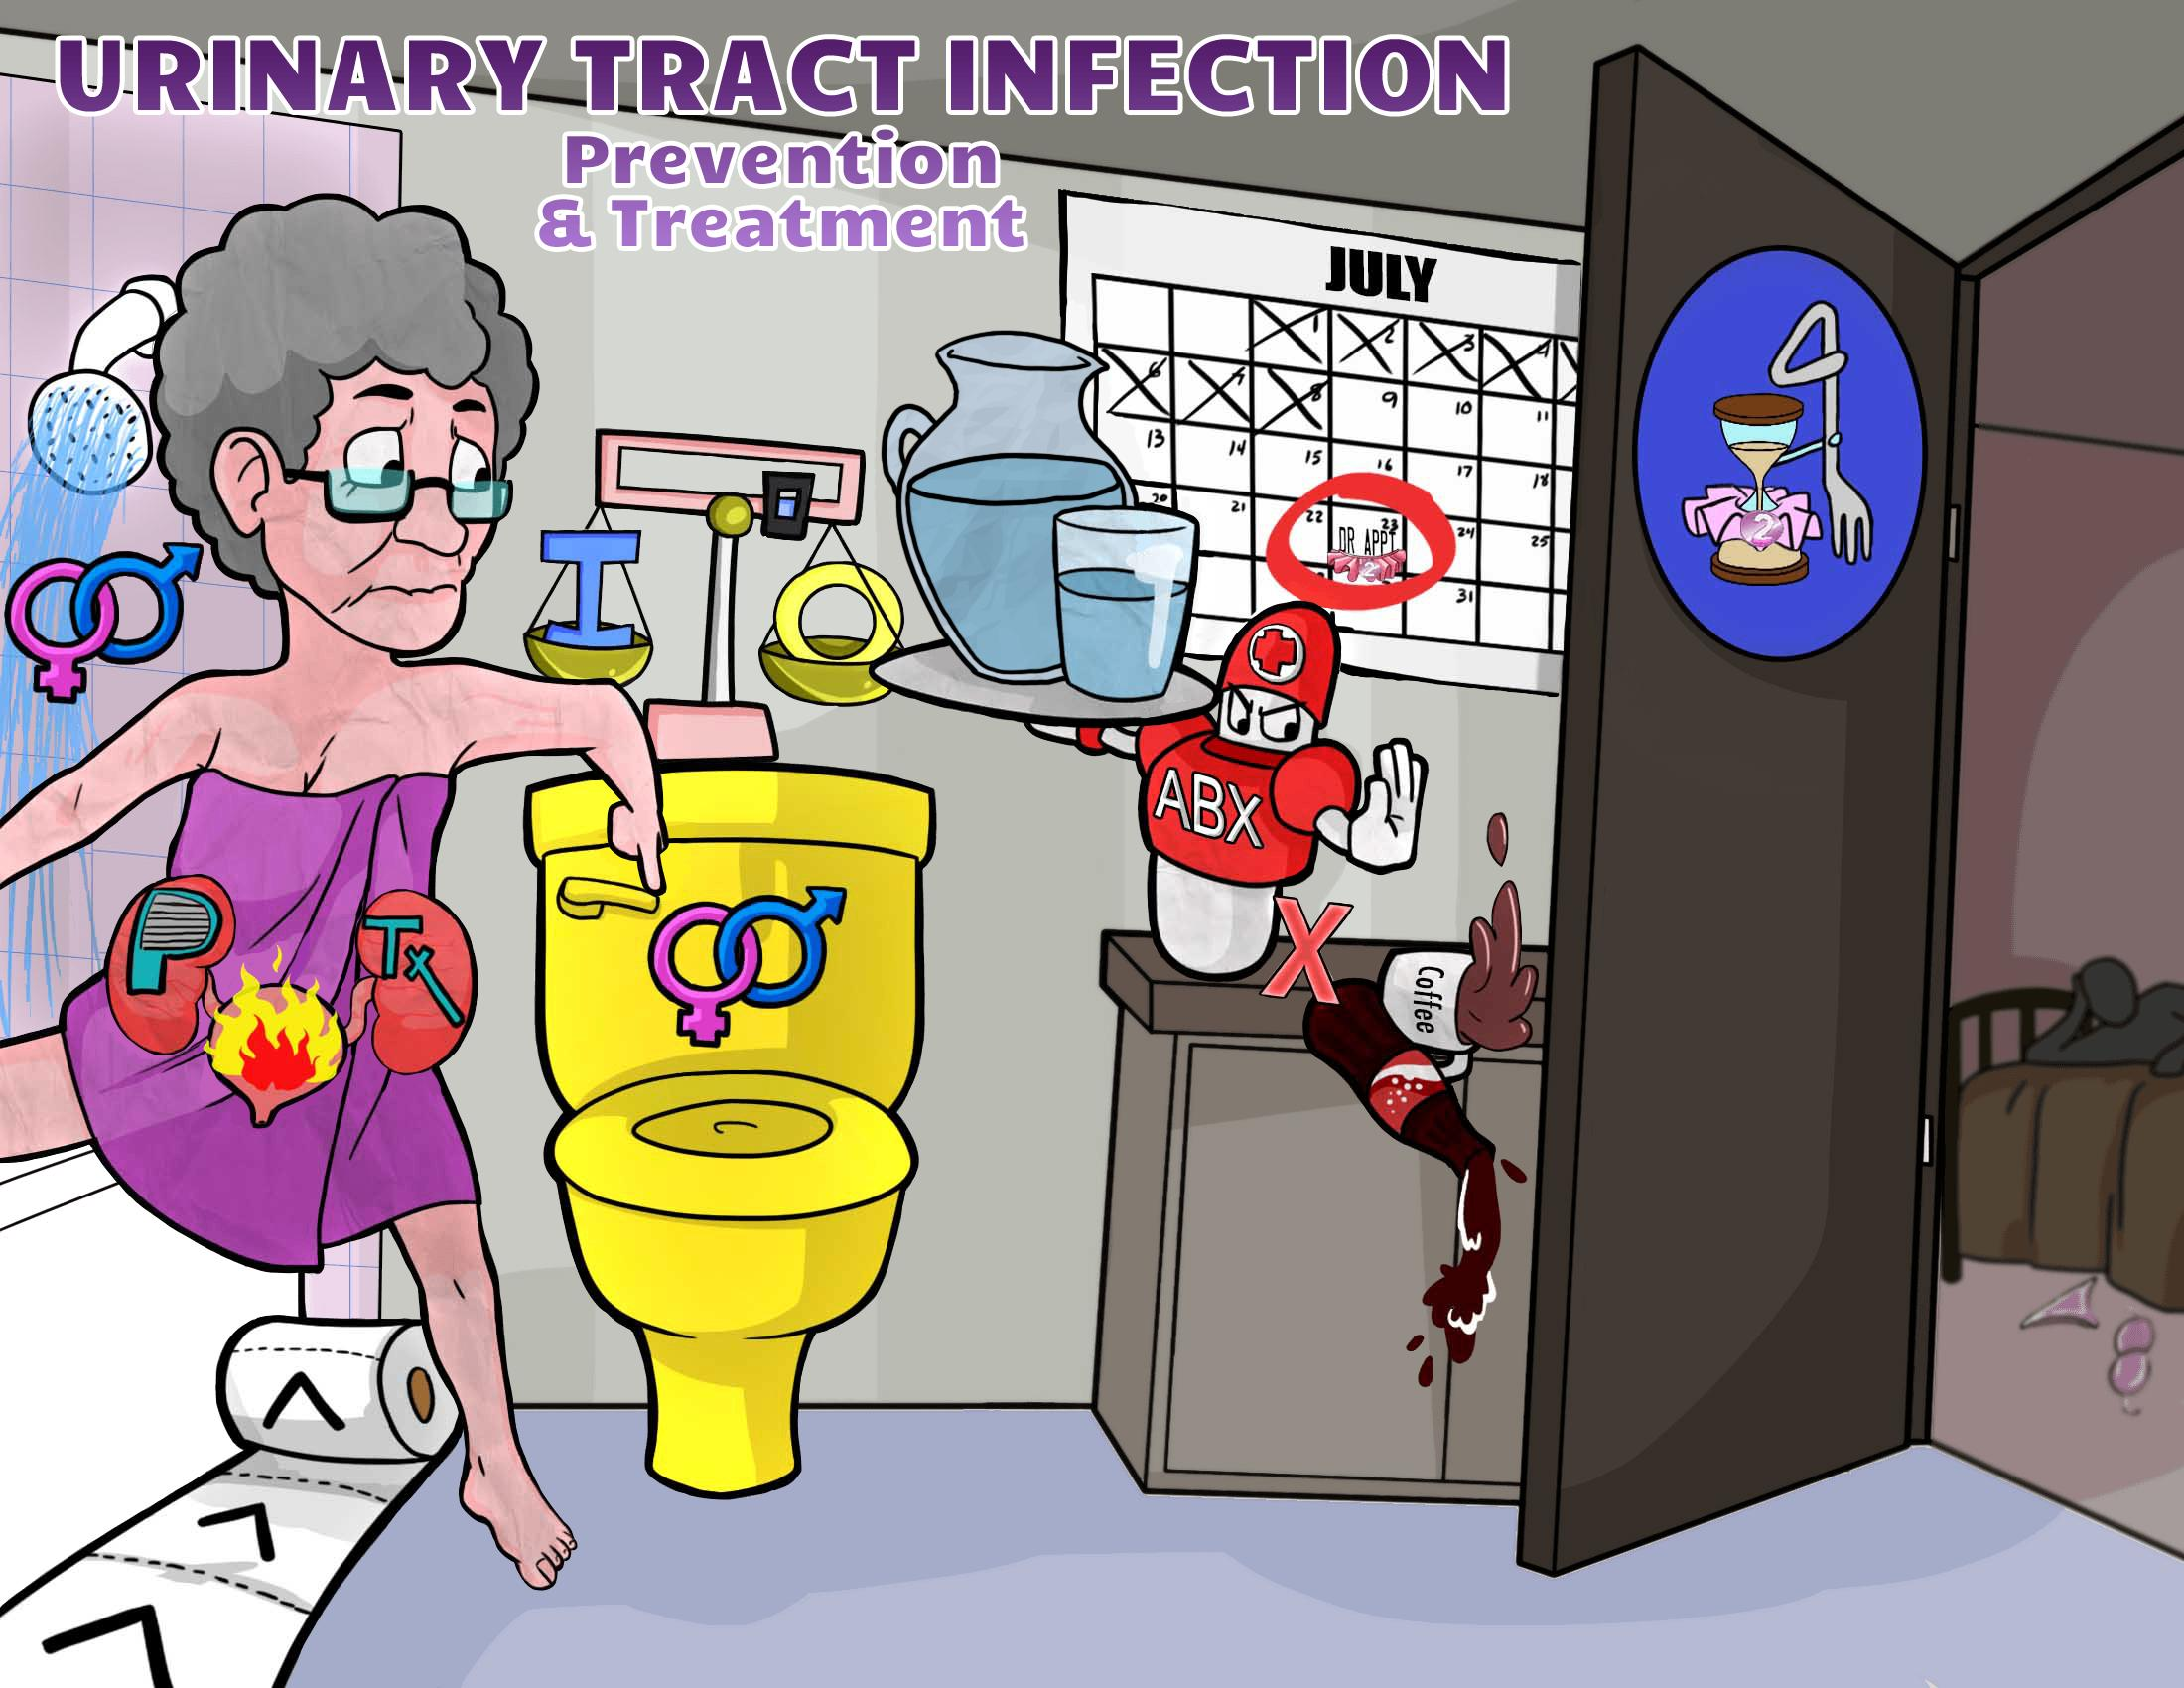 Urinary Tract Infection Prevention and Treatment